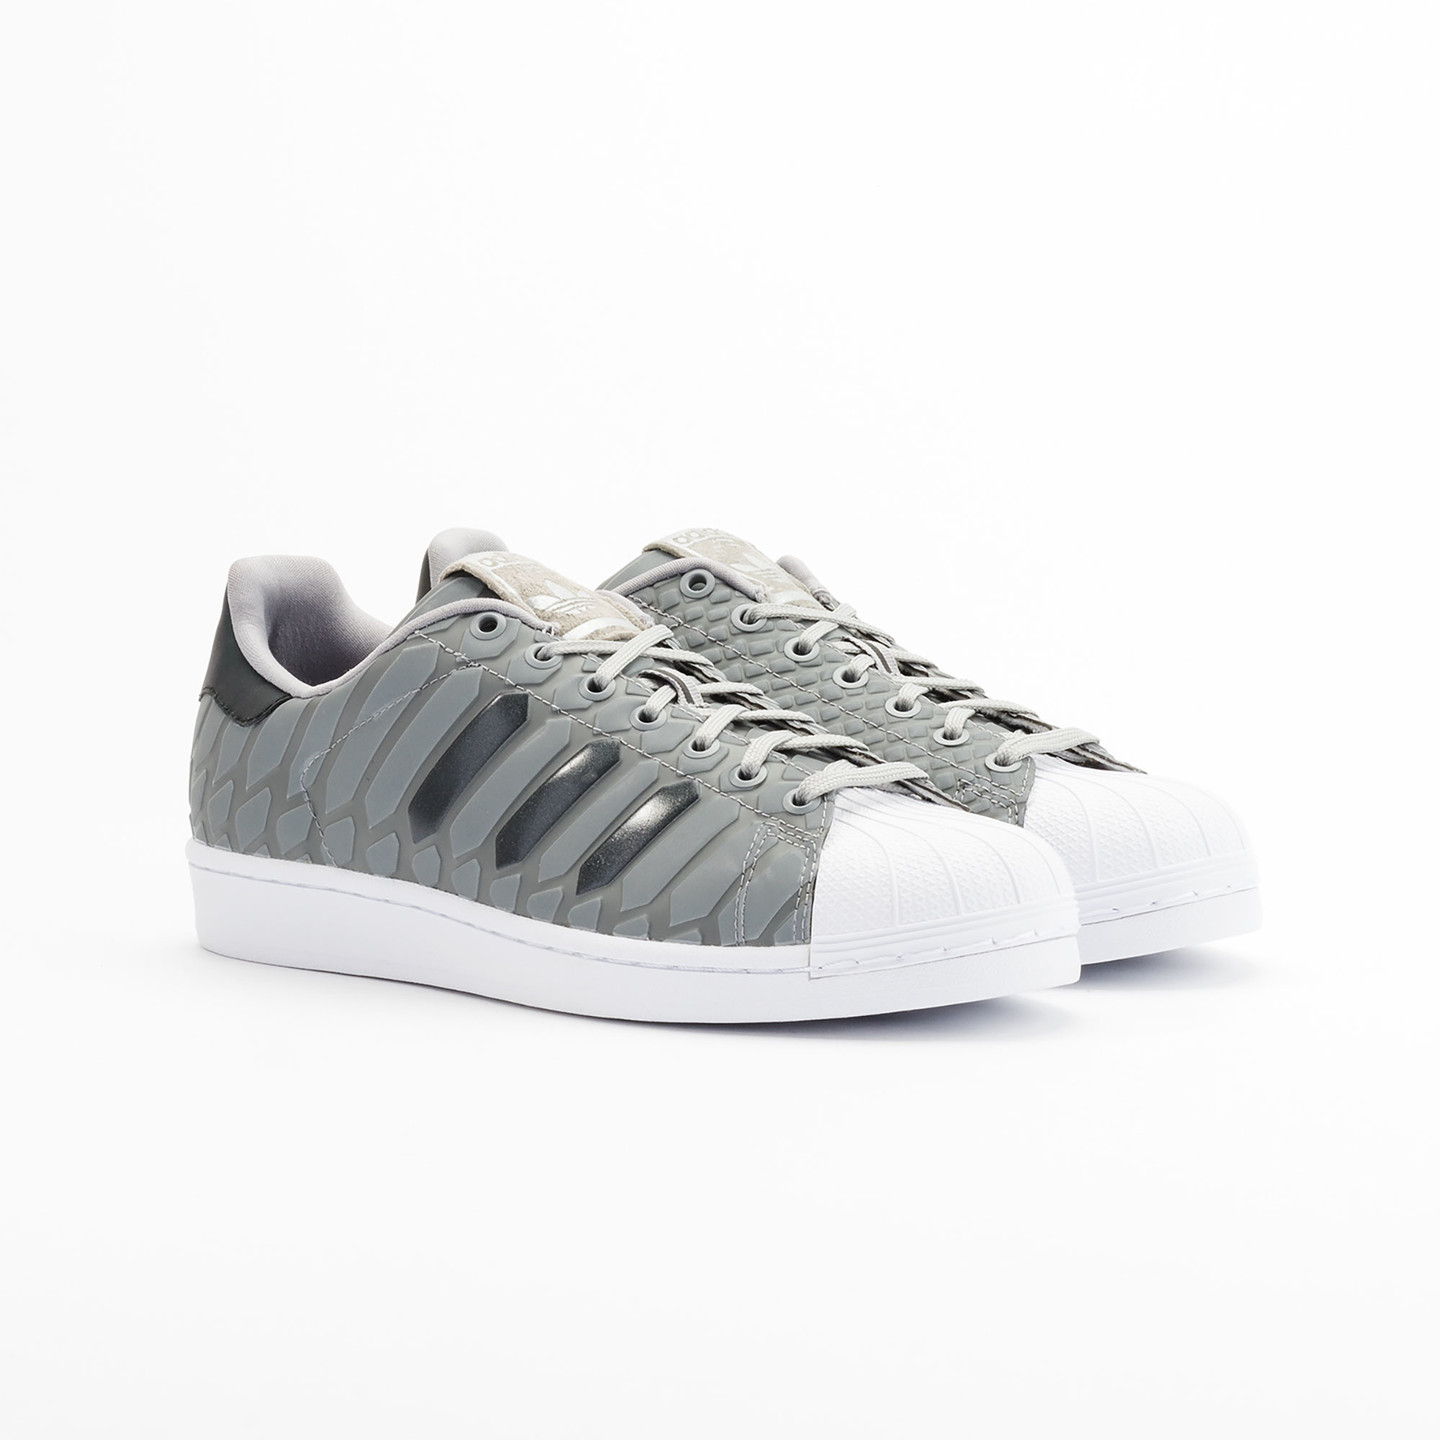 Adidas Superstar Xeno Pack Ltonix / Supcol / Ftwwht D69367-45.33